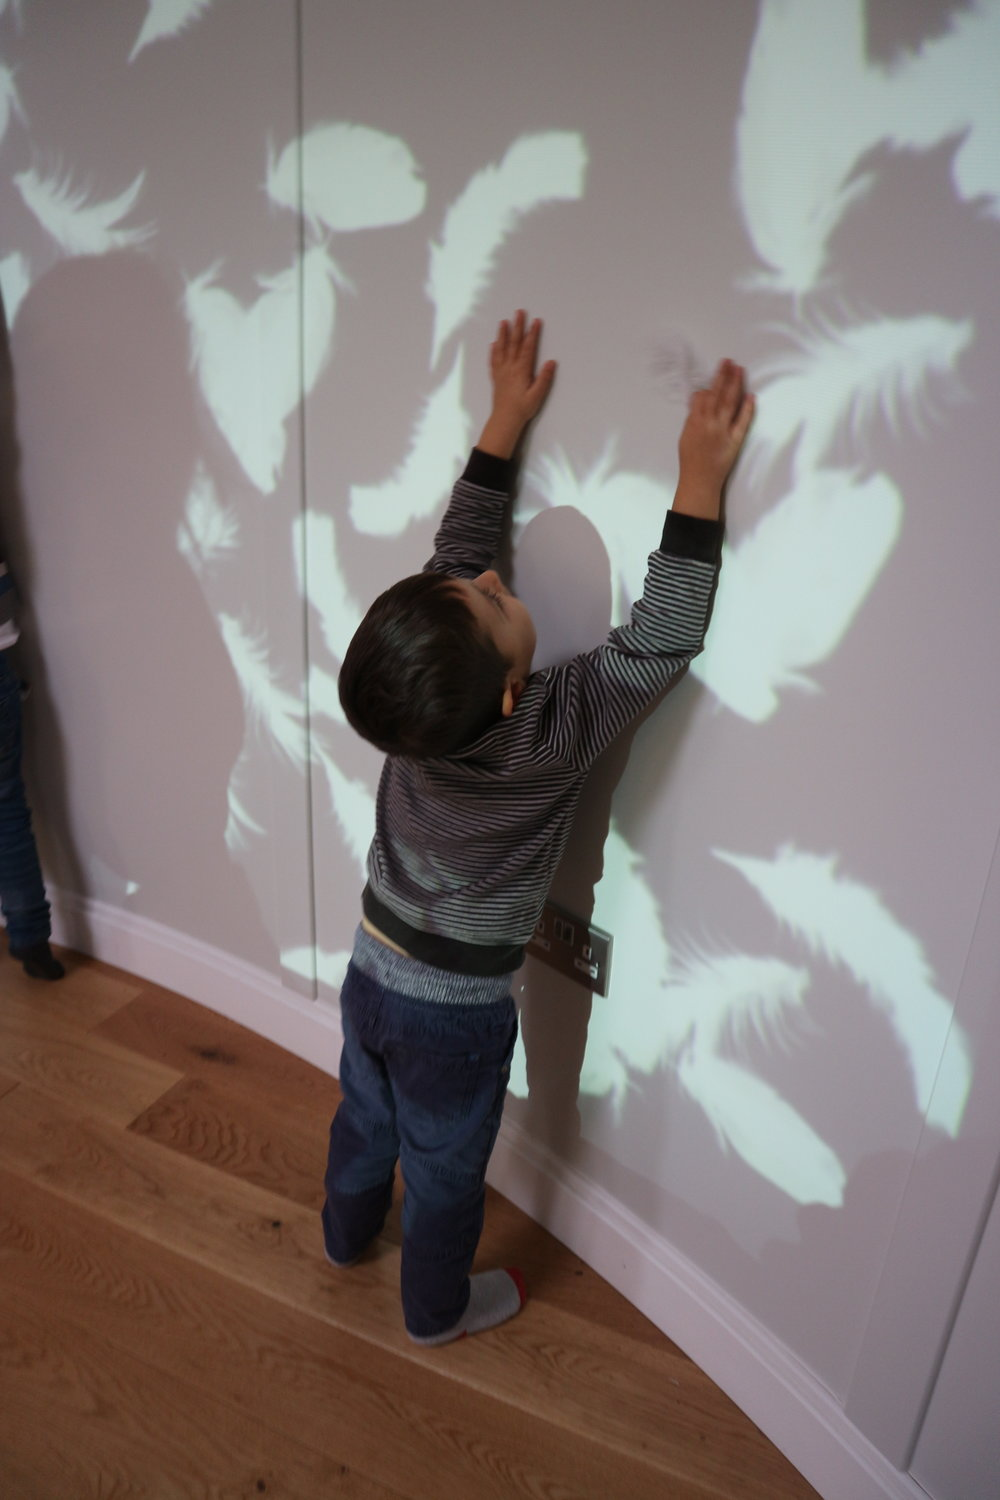 Feather Projections - Deliciously engaging, delightfully inspiring